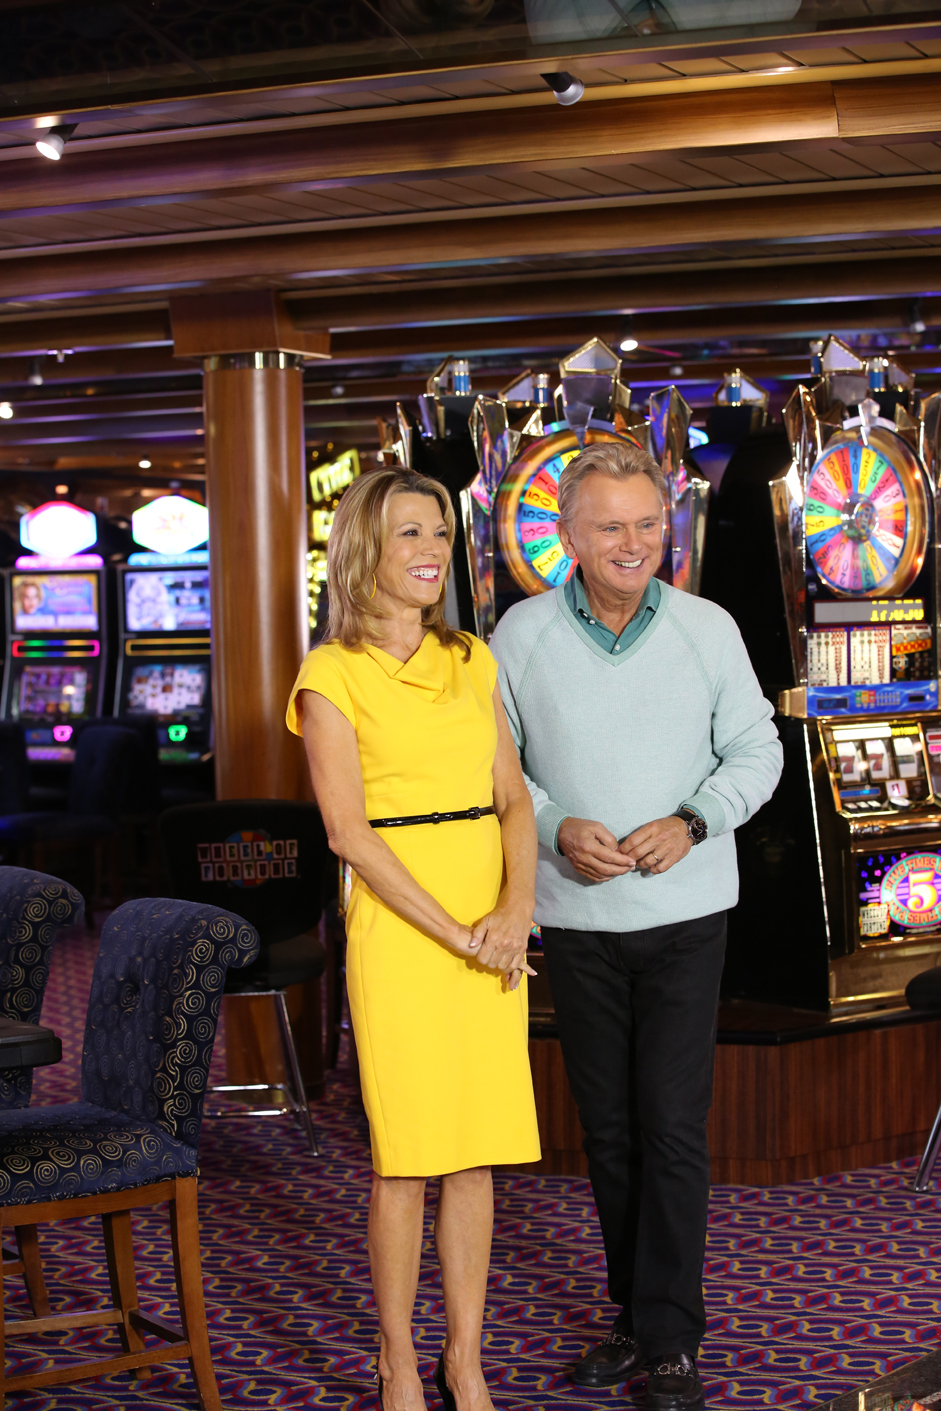 Carnival Cruise Line To Give Away 40 Cruises As Part Of Wheel Of Fortune's '$5K Every Day' Promotion